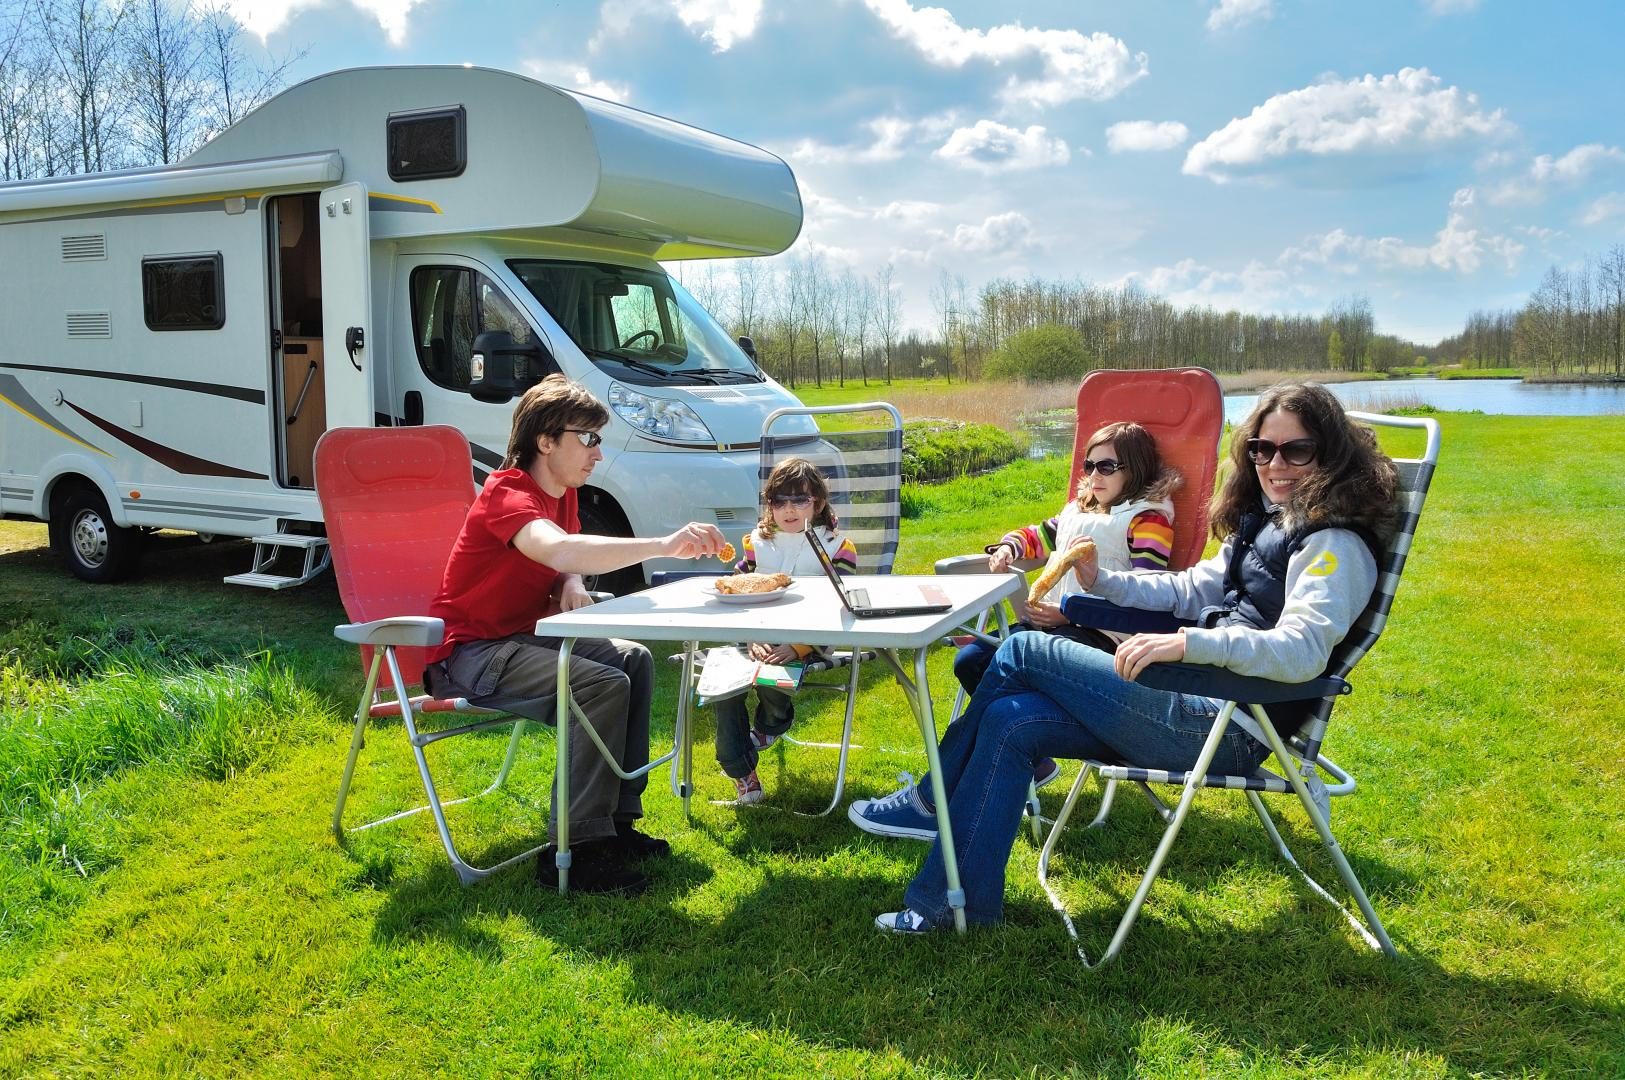 Full time RV living tips